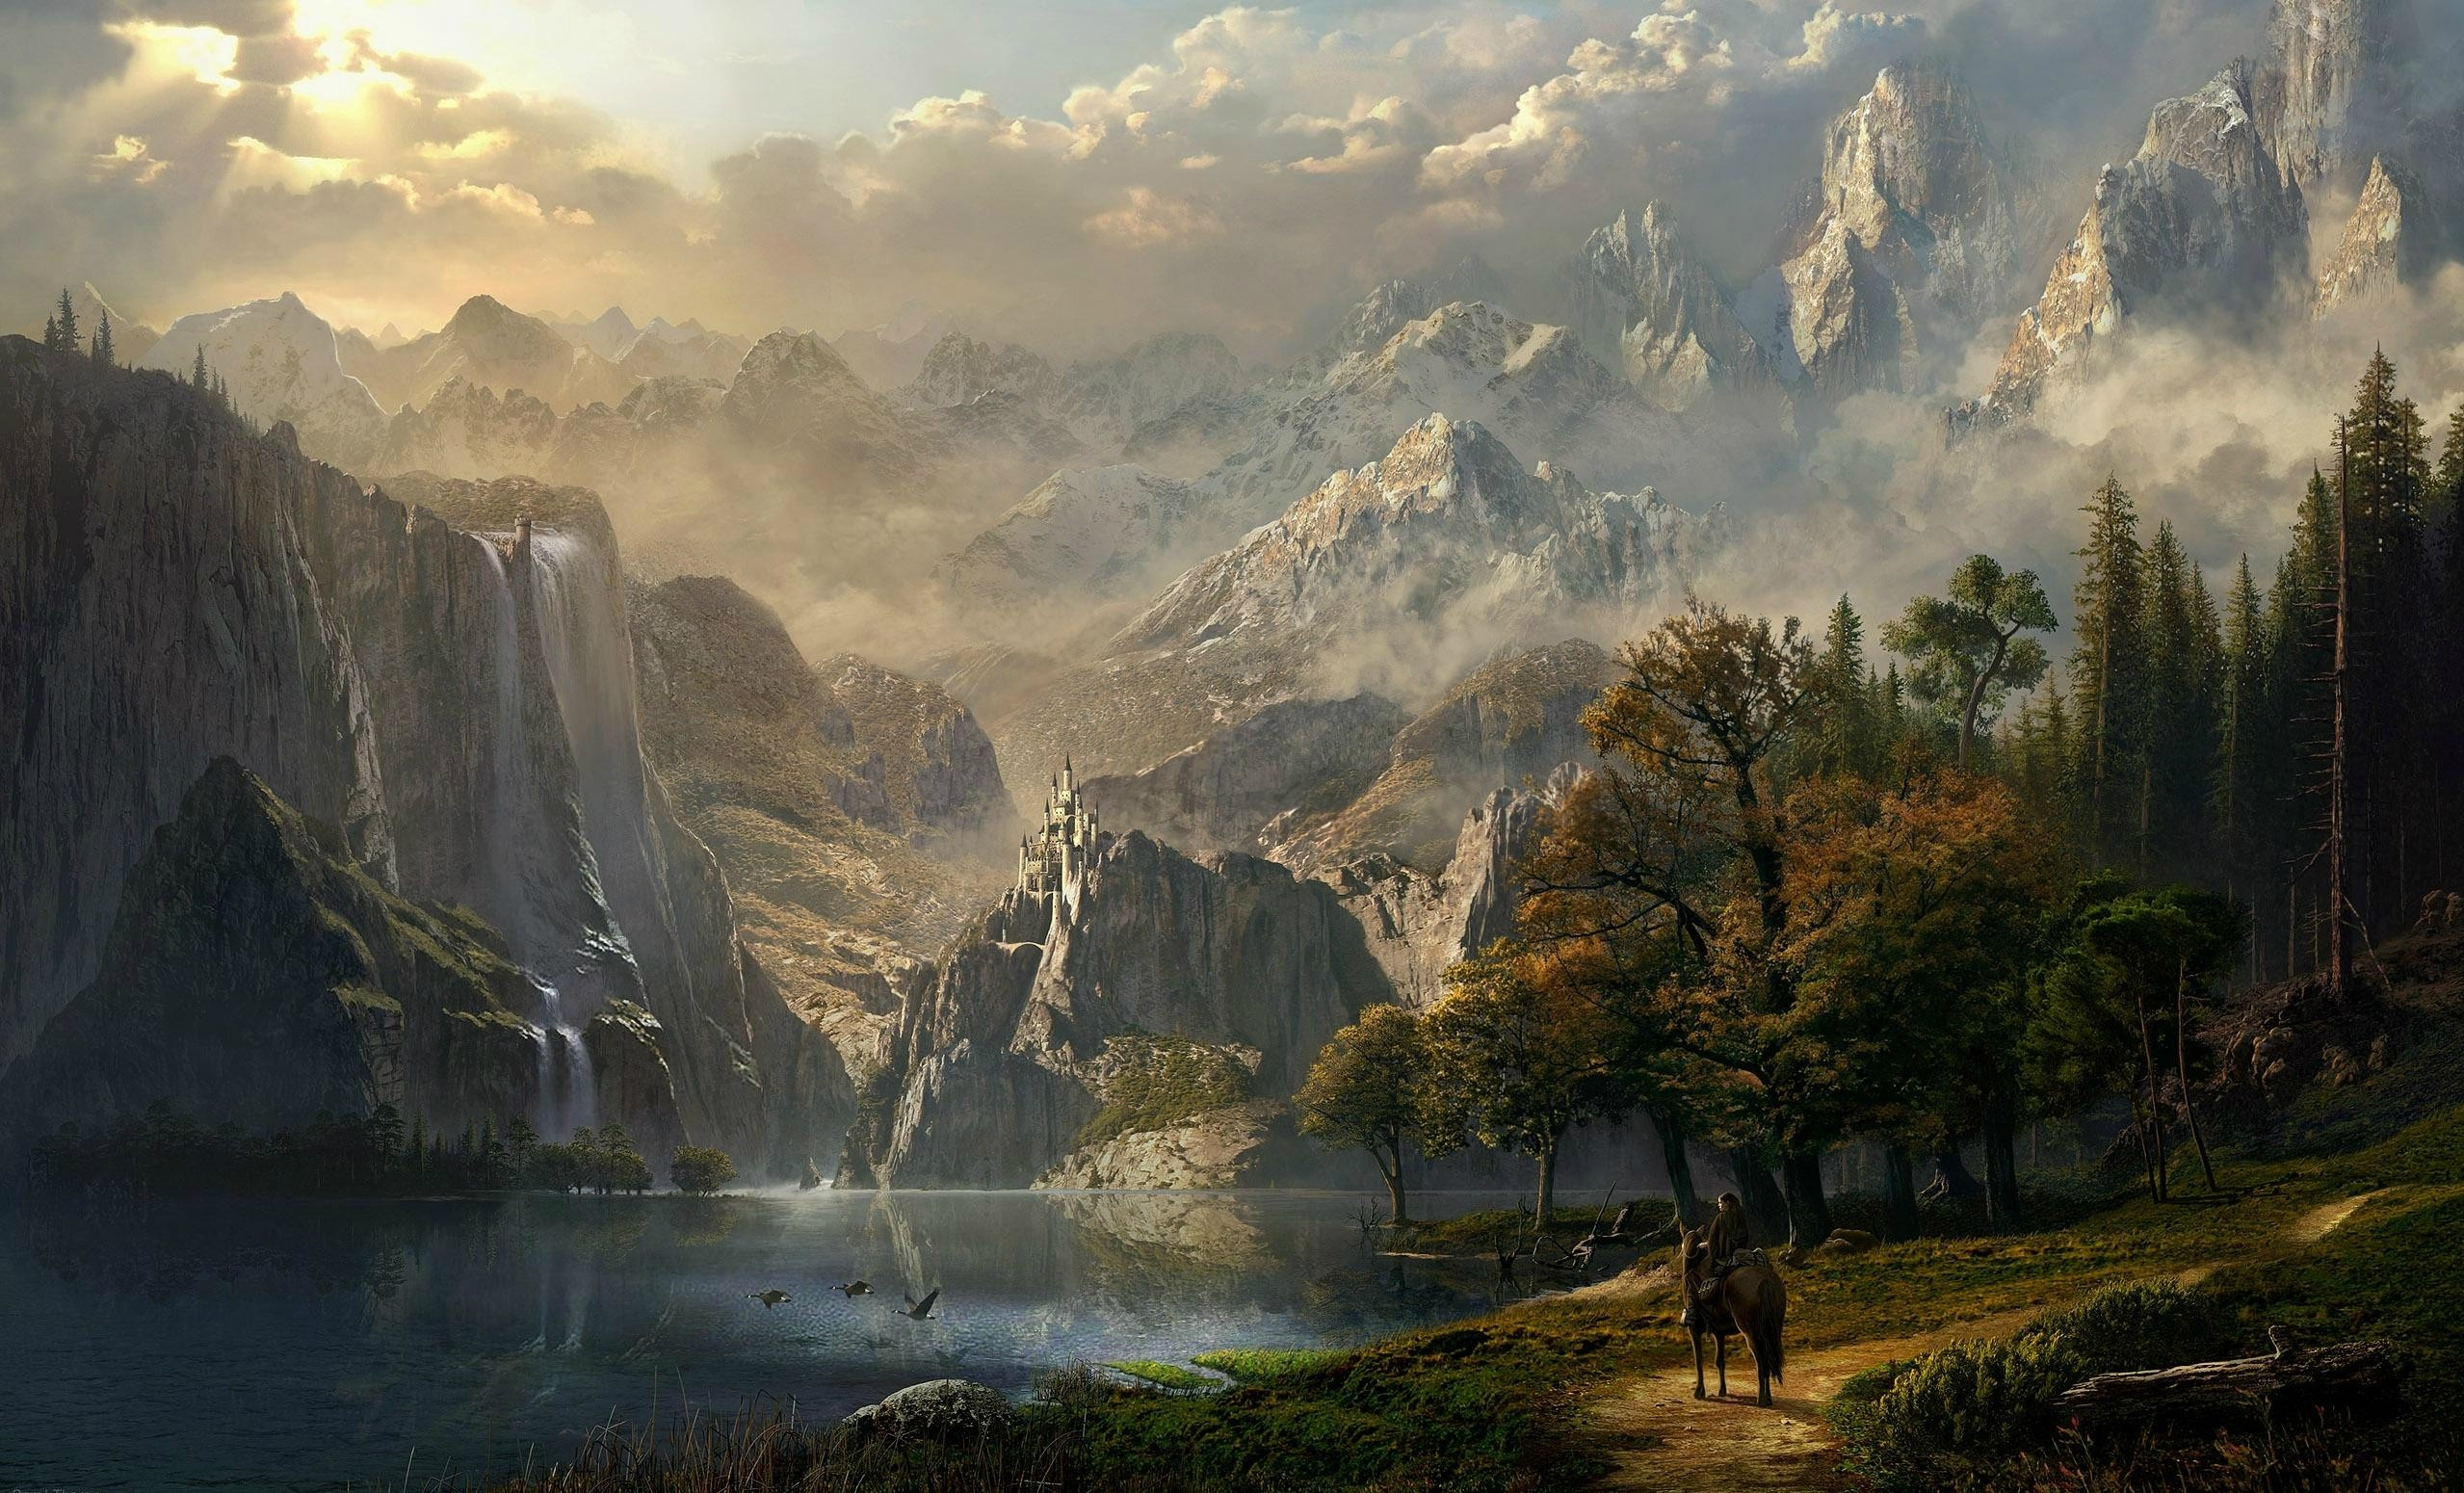 fantasy landscape wallpaper ·① download free awesome hd backgrounds